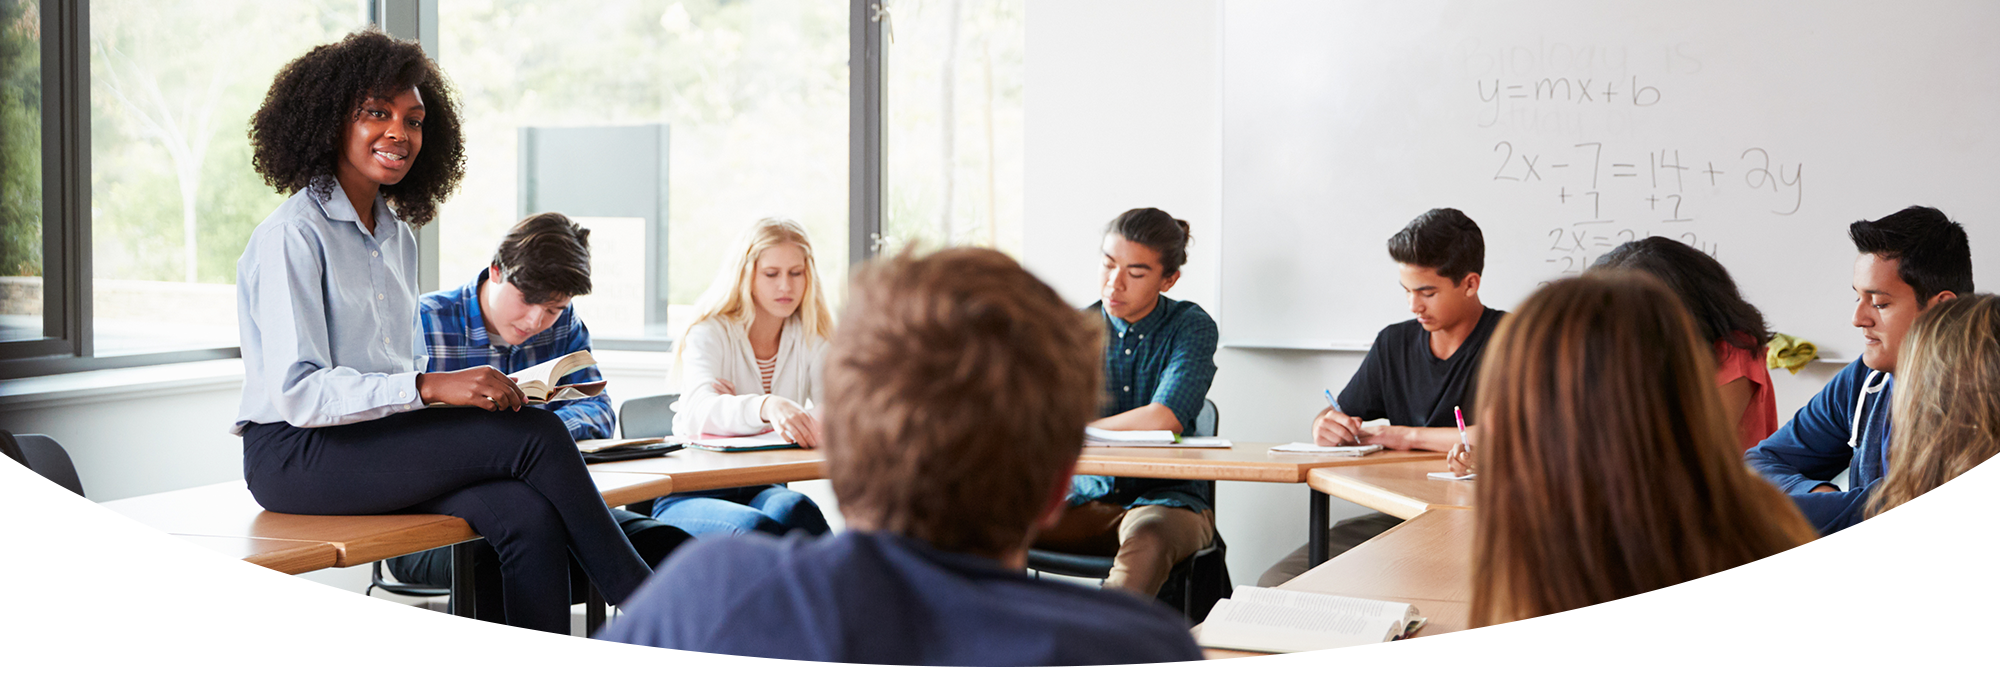 iDesign | News | What Faculty Need to Know About Learner Experience Design